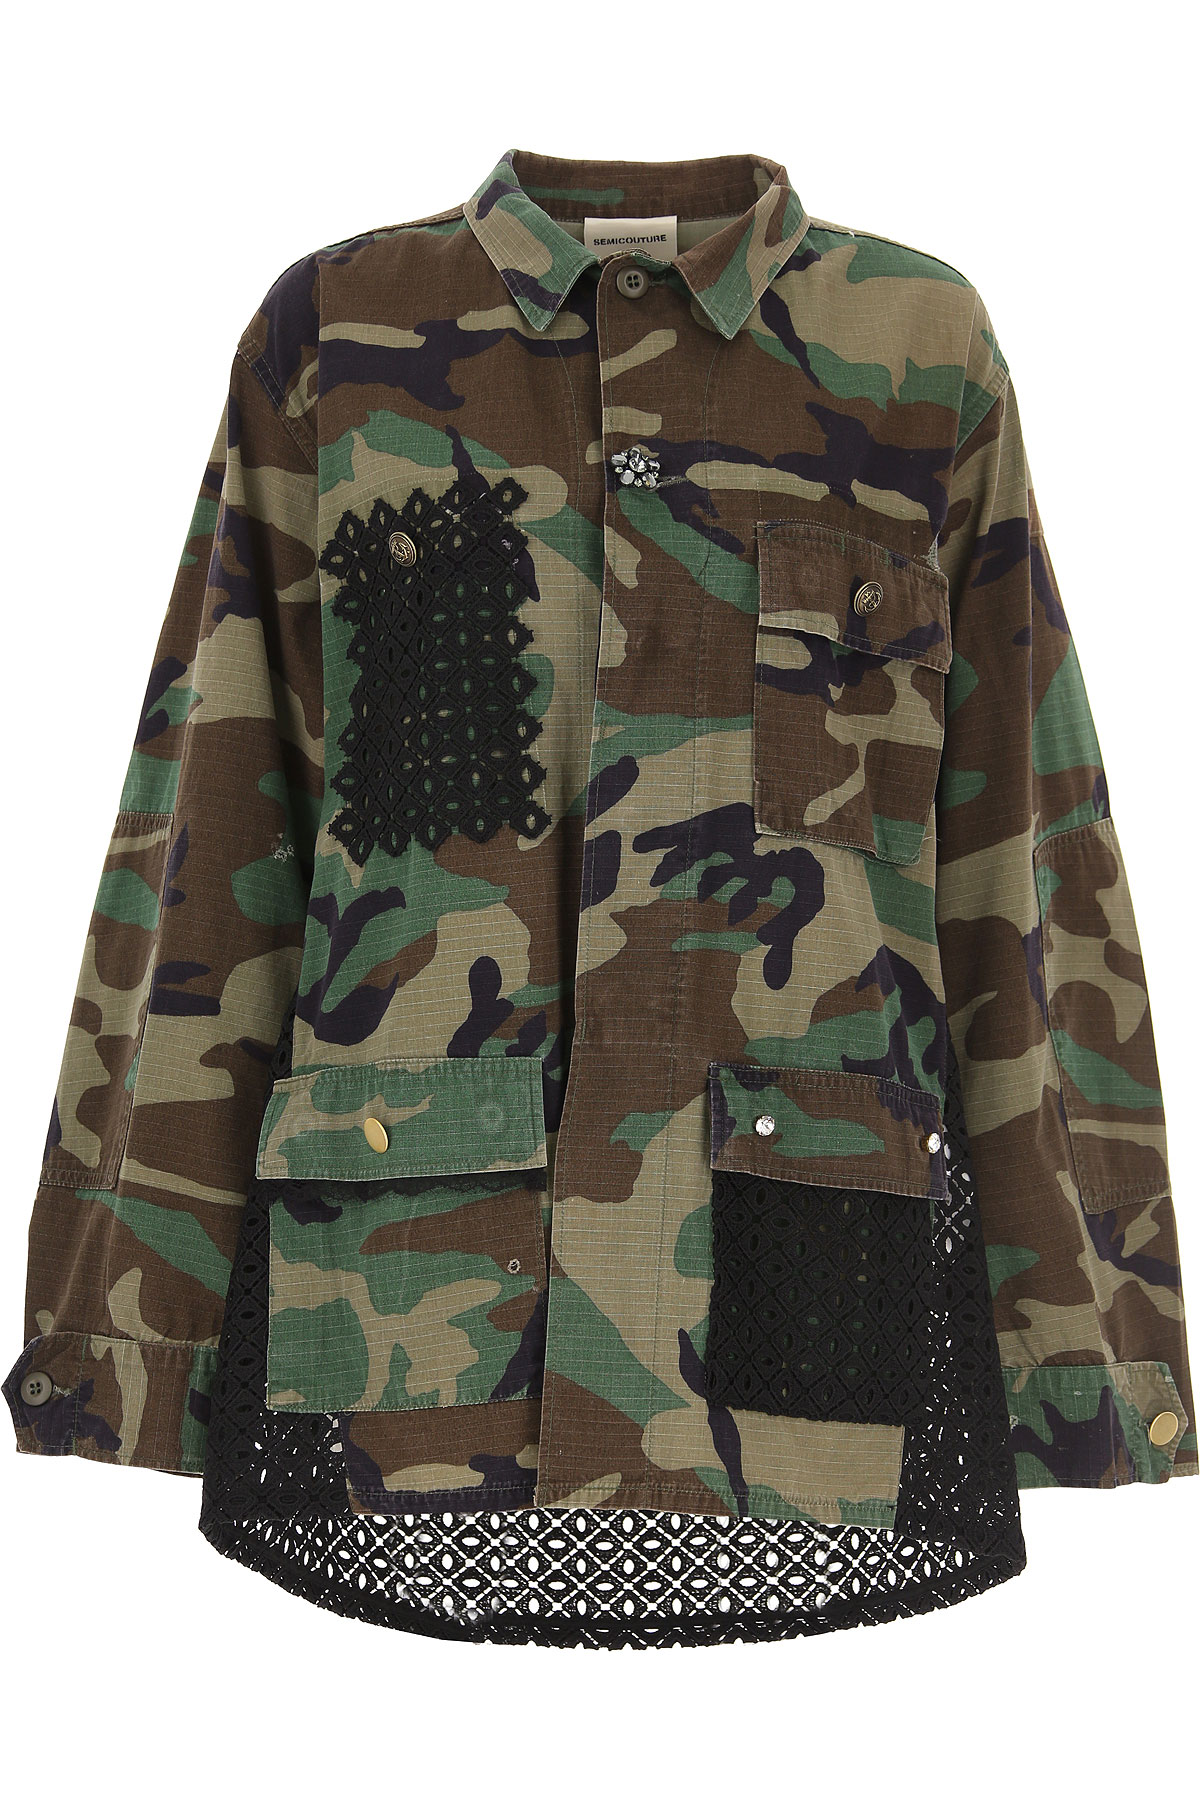 Semicouture Jacket for Women On Sale, Military Green, Cotton, 2019